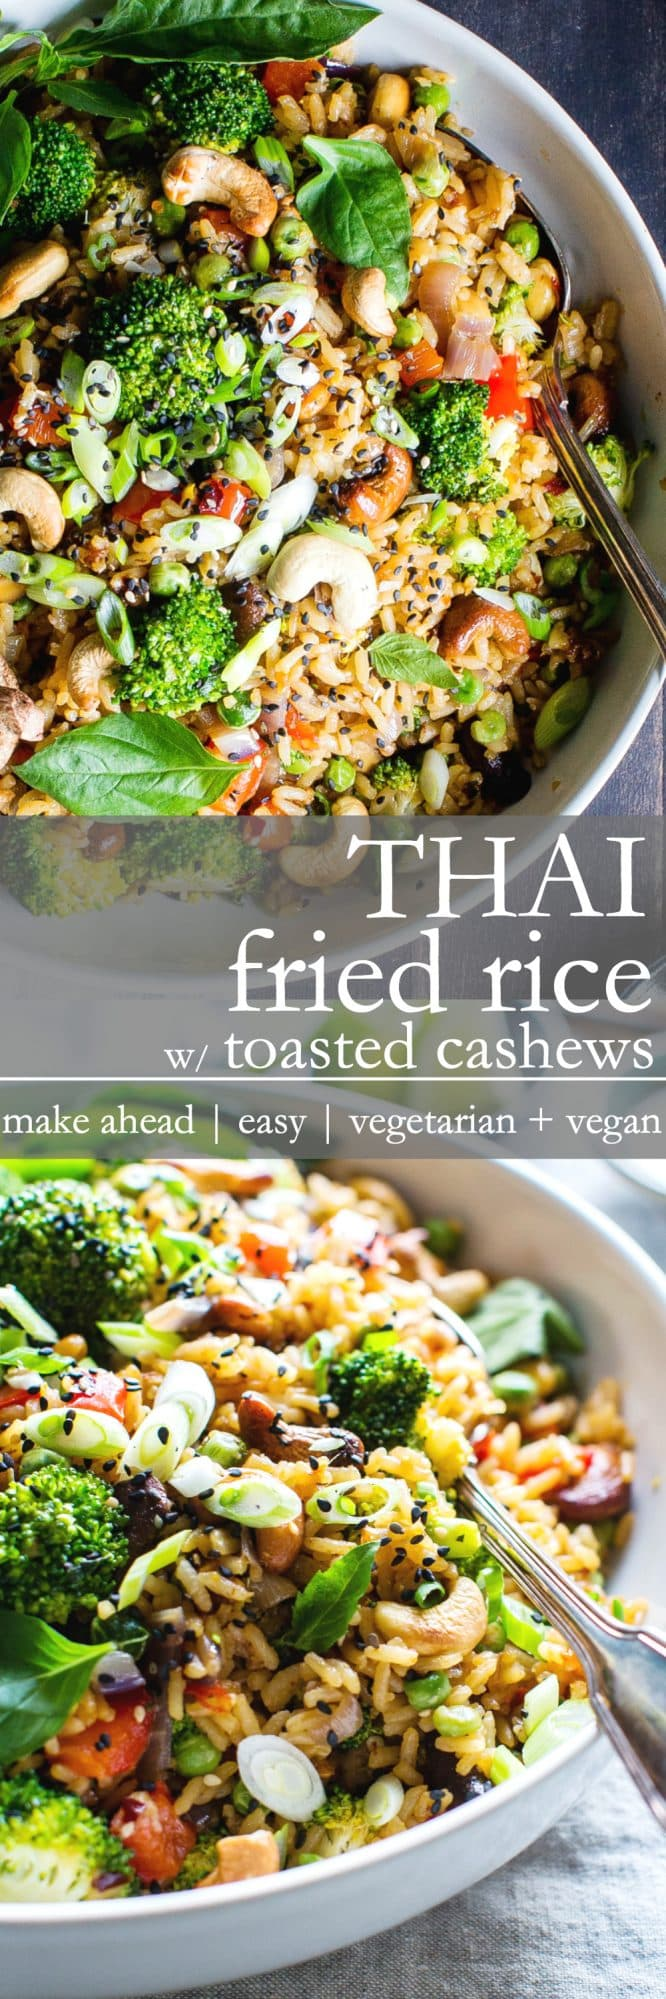 Thai Fried Rice with Toasted Cashews | Make ahead, weeknight make at home take out! Veggie packed and full on umami! This recipe is vegan + vegetarian + gluten free